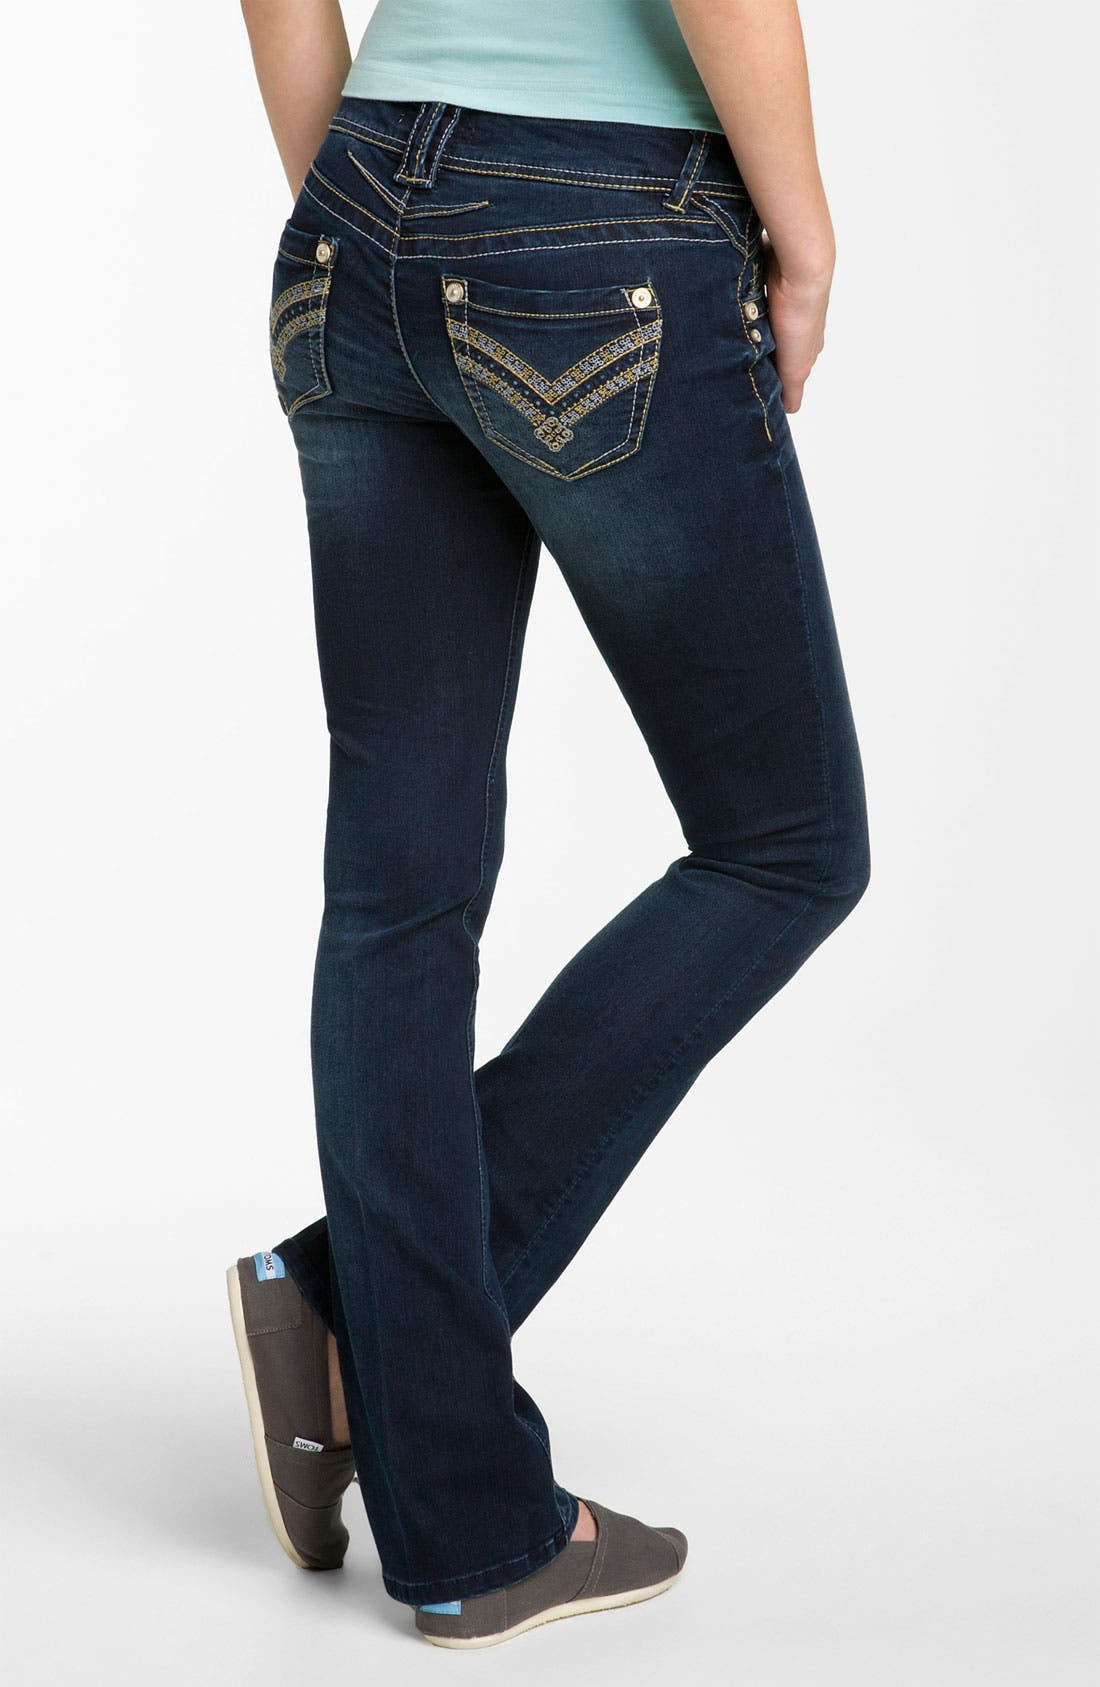 Alternate Image 1 Selected - Artisan Crafted 'Itty Bitty' Bootcut Jeans  (Juniors)